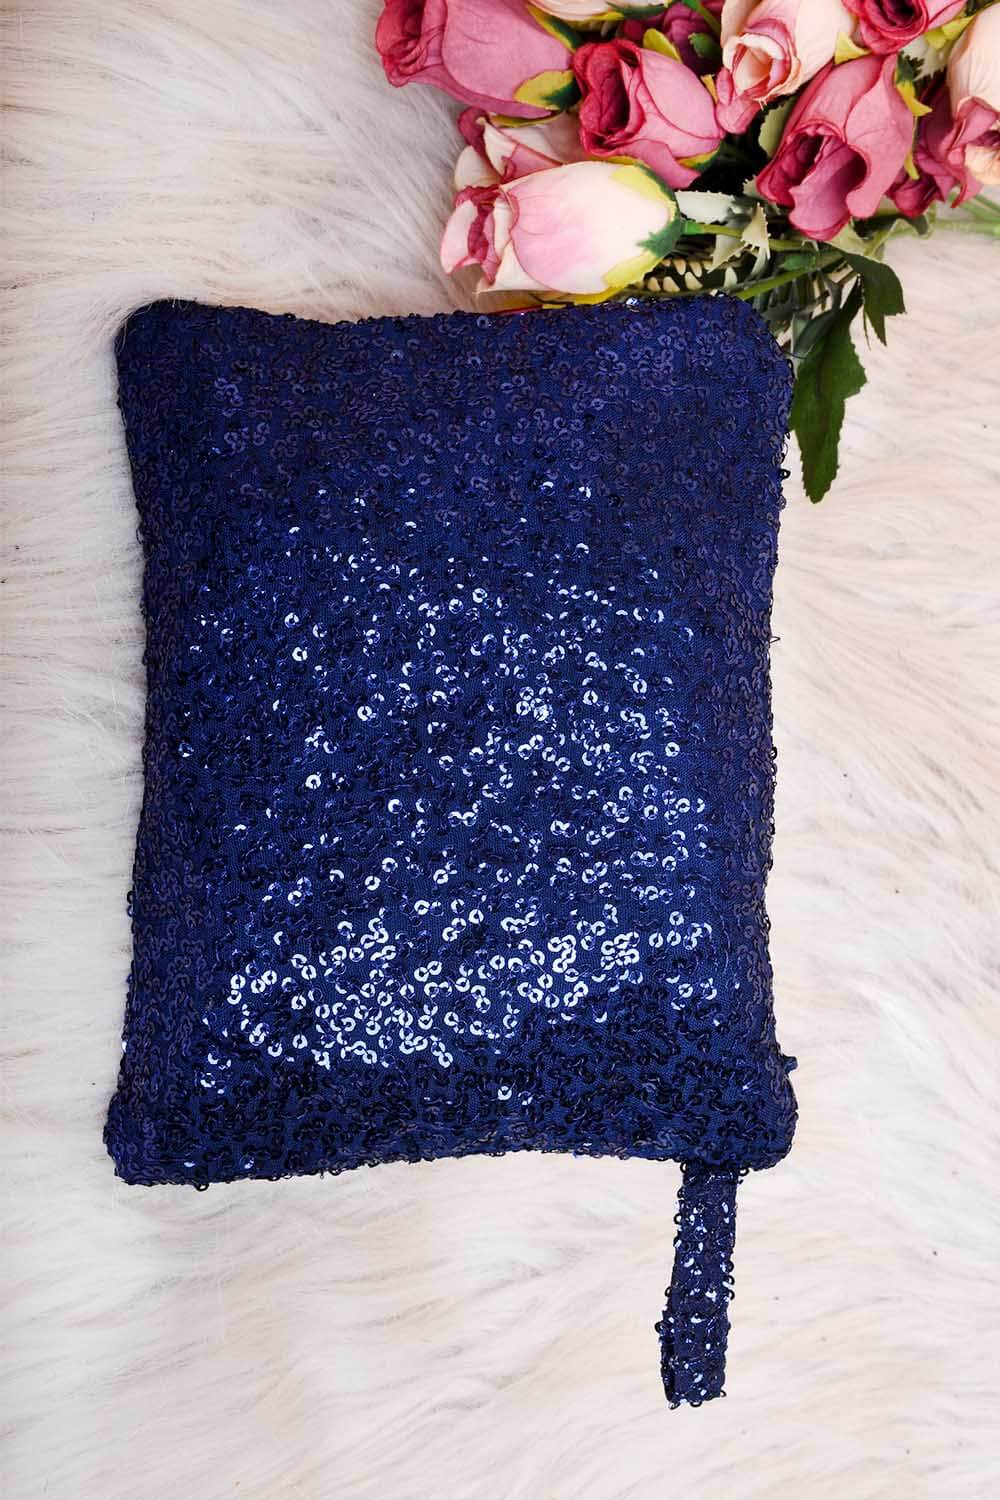 Navy Blue Sequins Pouch